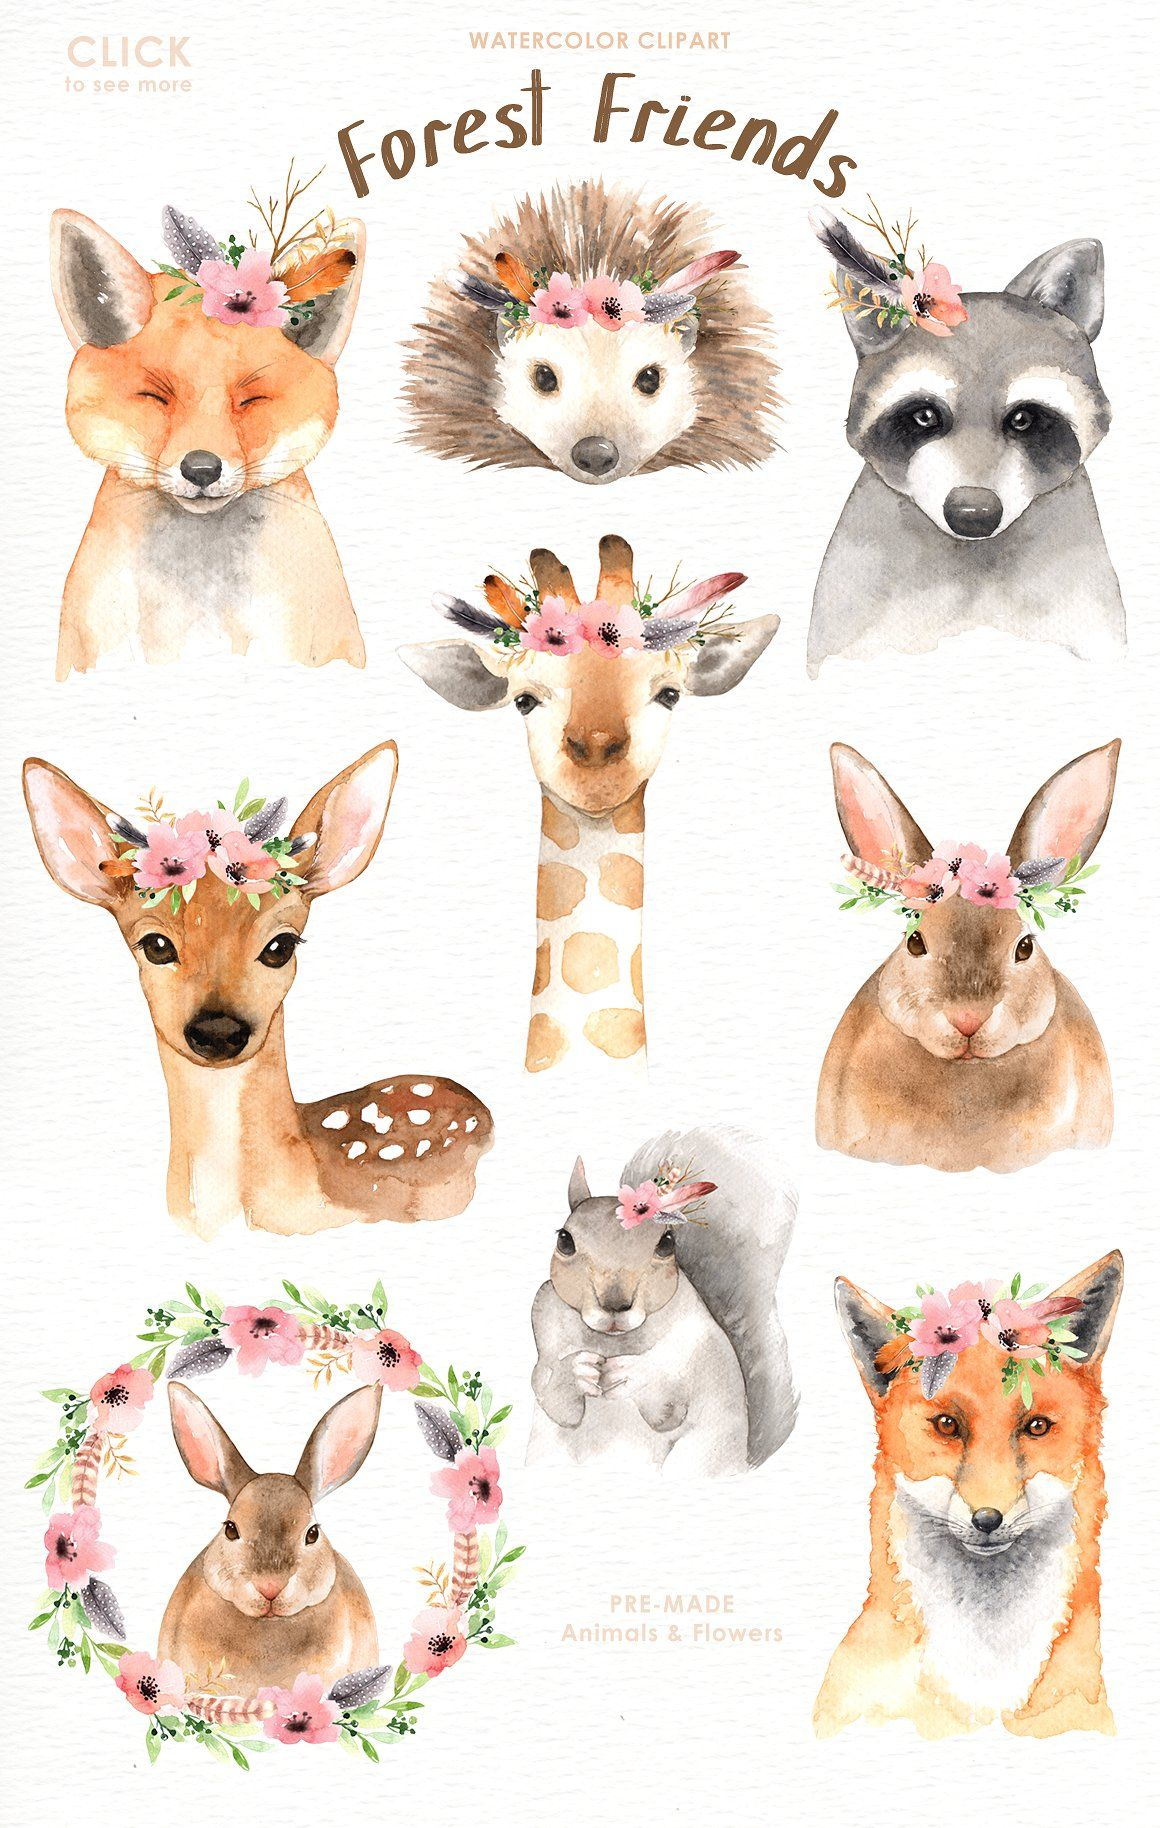 1160x1828 Forest Friends Watercolor Clip Art Forest Friends, Clip Art And